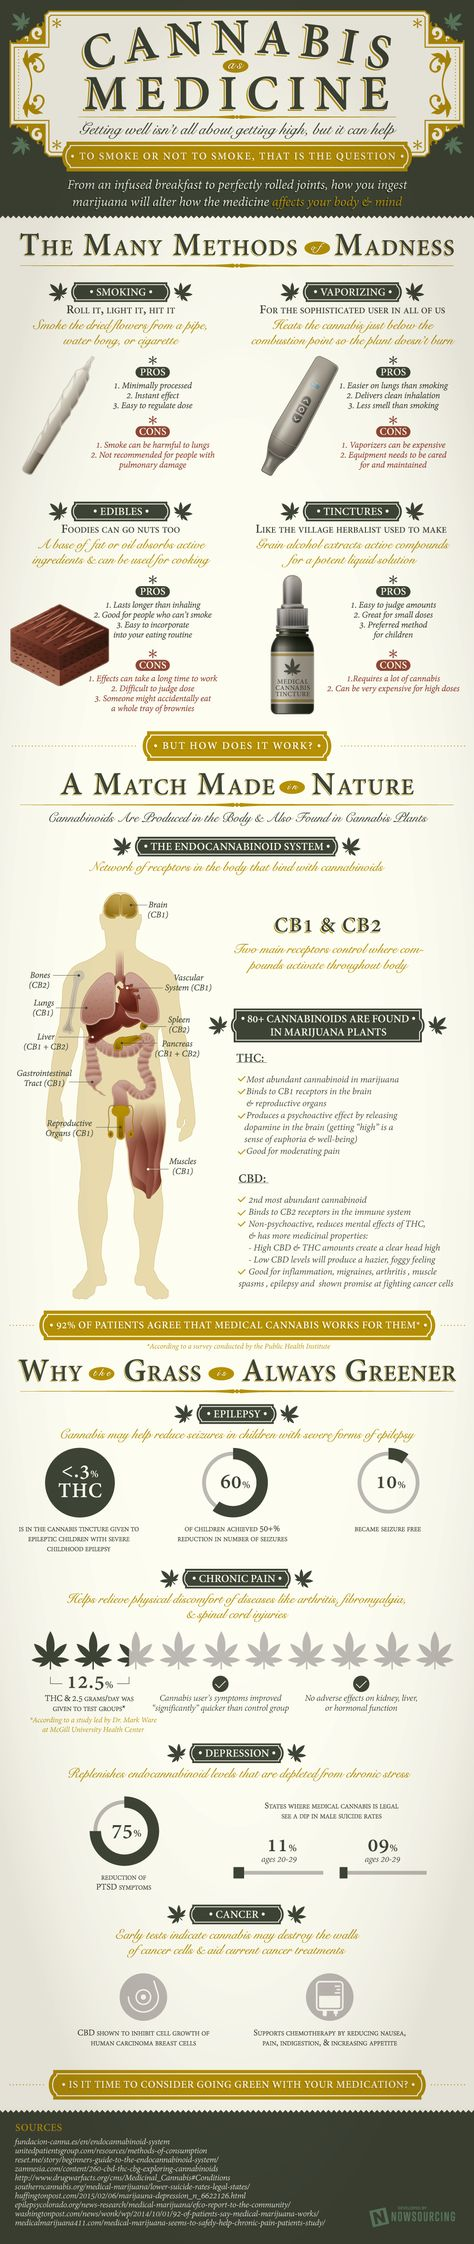 The 9 best images about widoctor on Pinterest | Cannabis oil ...